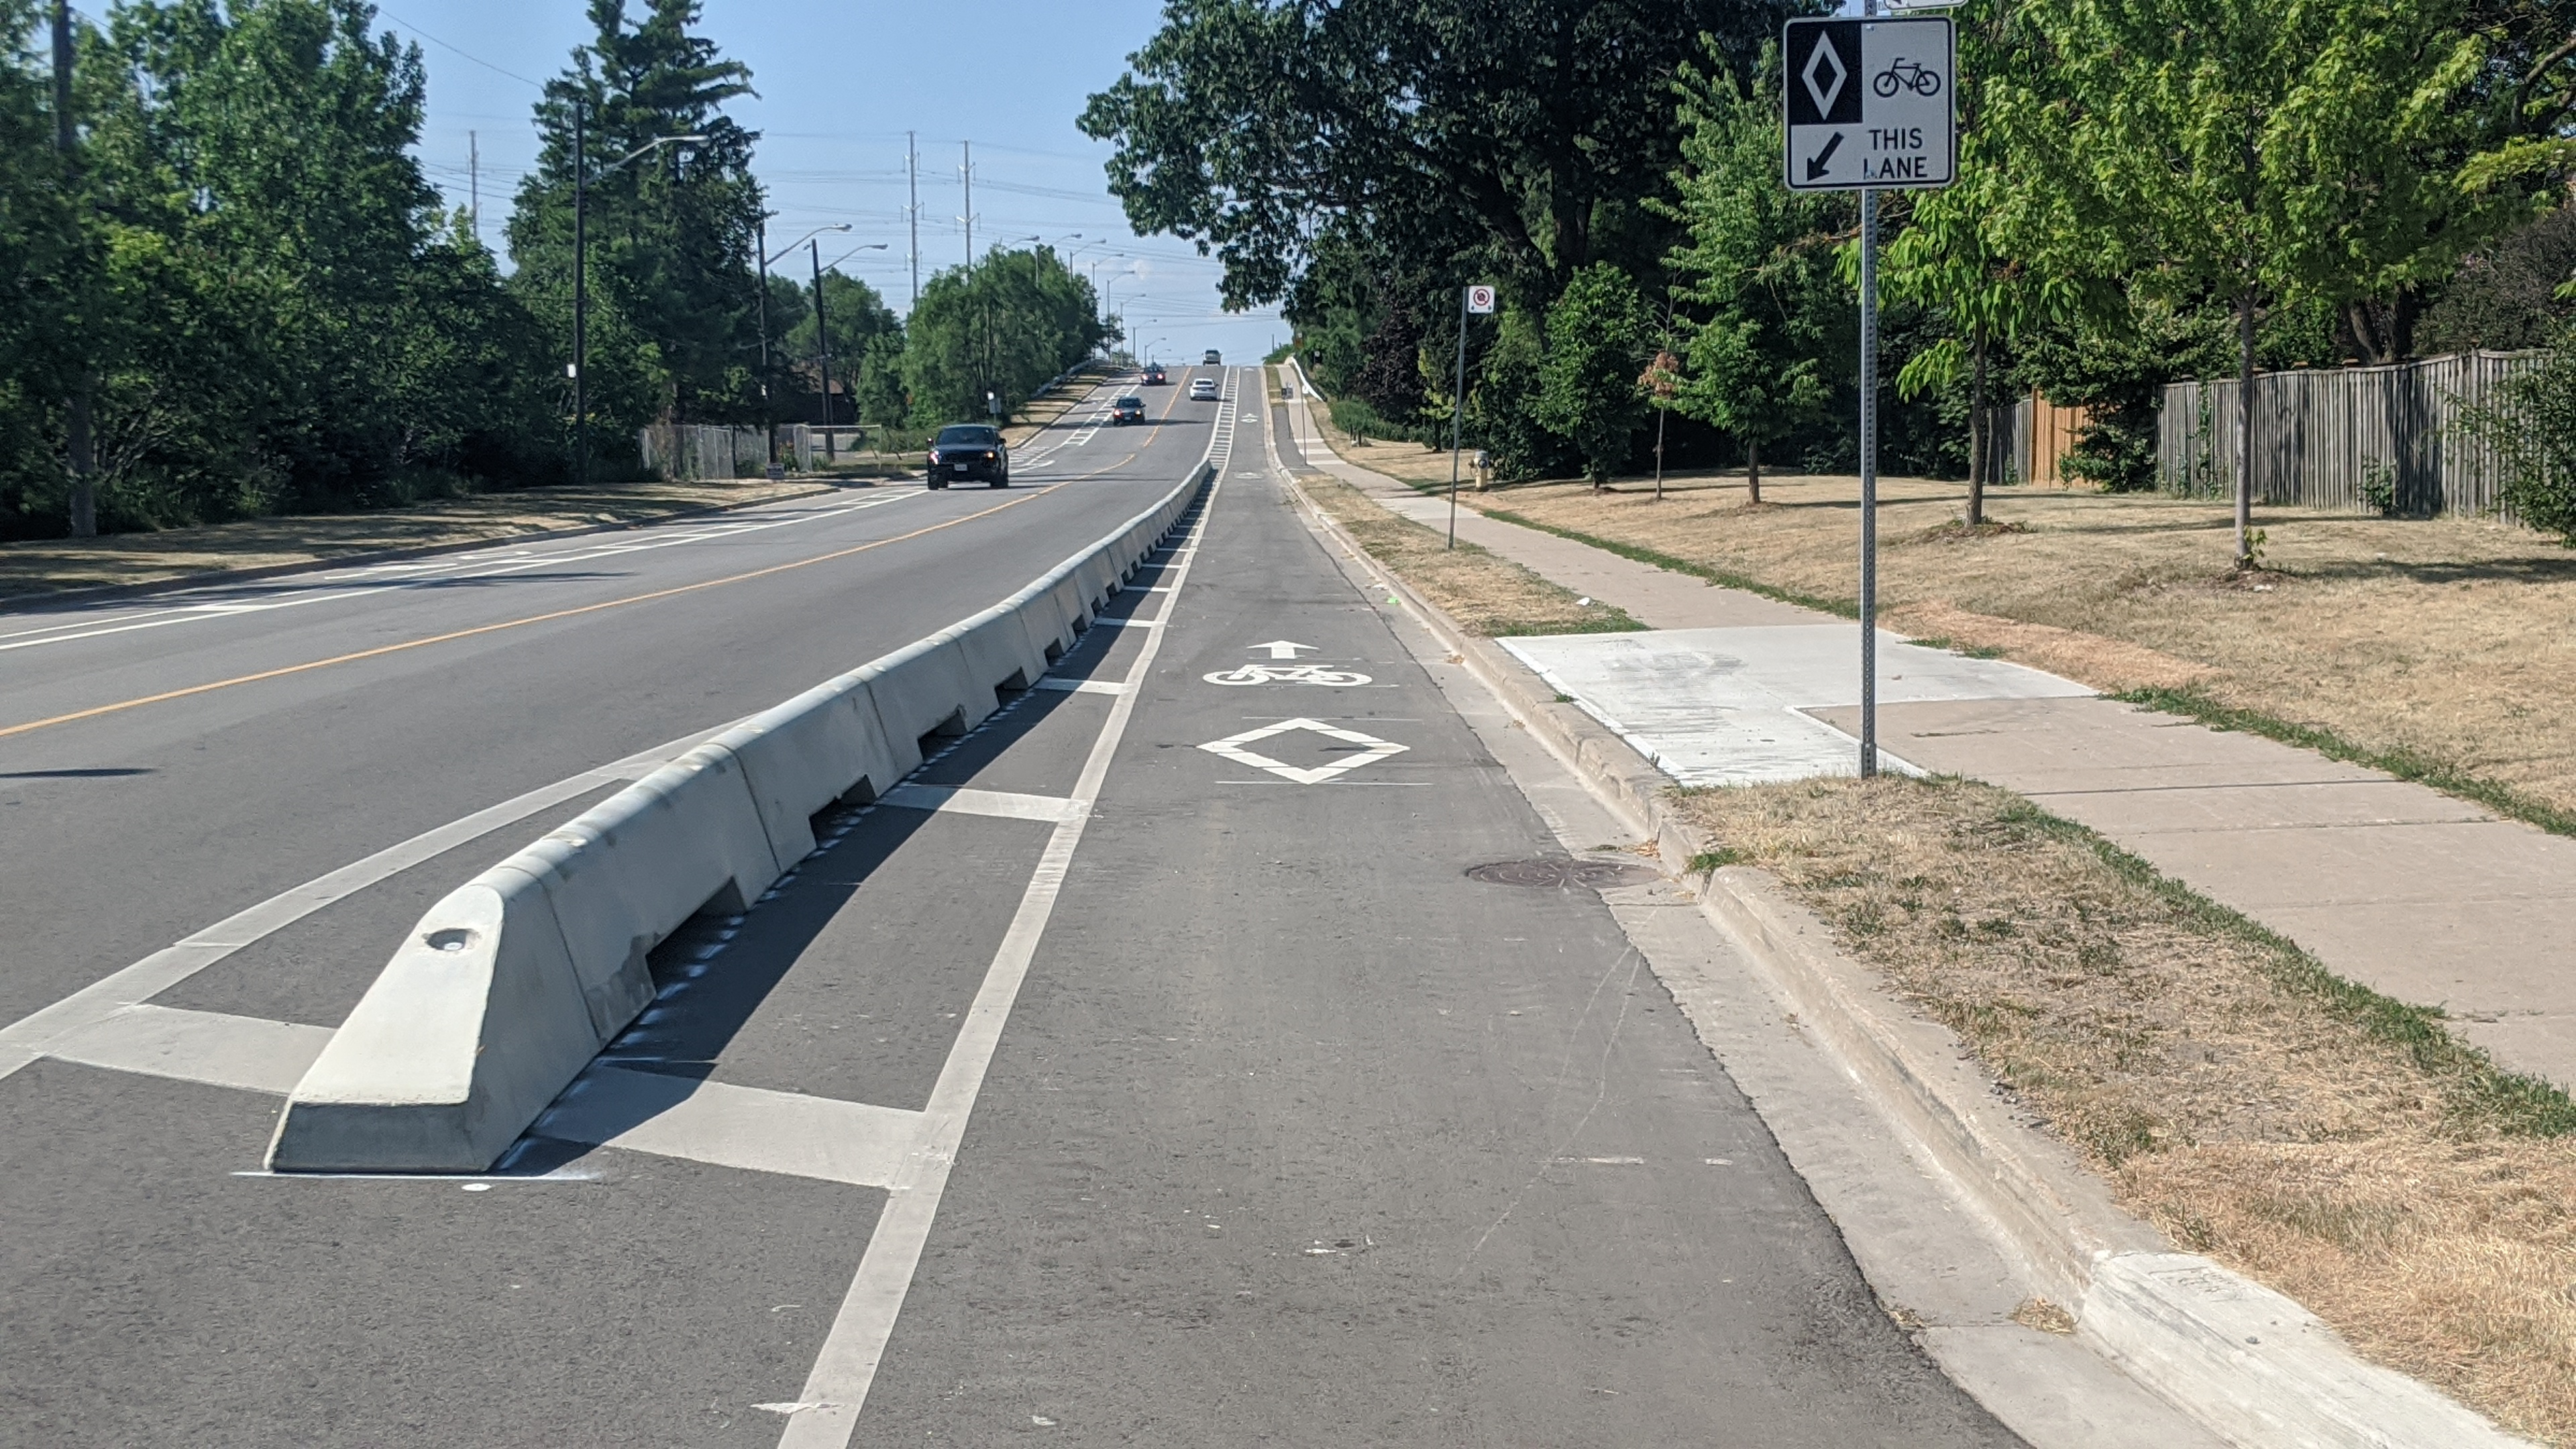 A wide road crests a hill in the distance. In the foreground a grey concrete wall separates a bike lane from traffic.